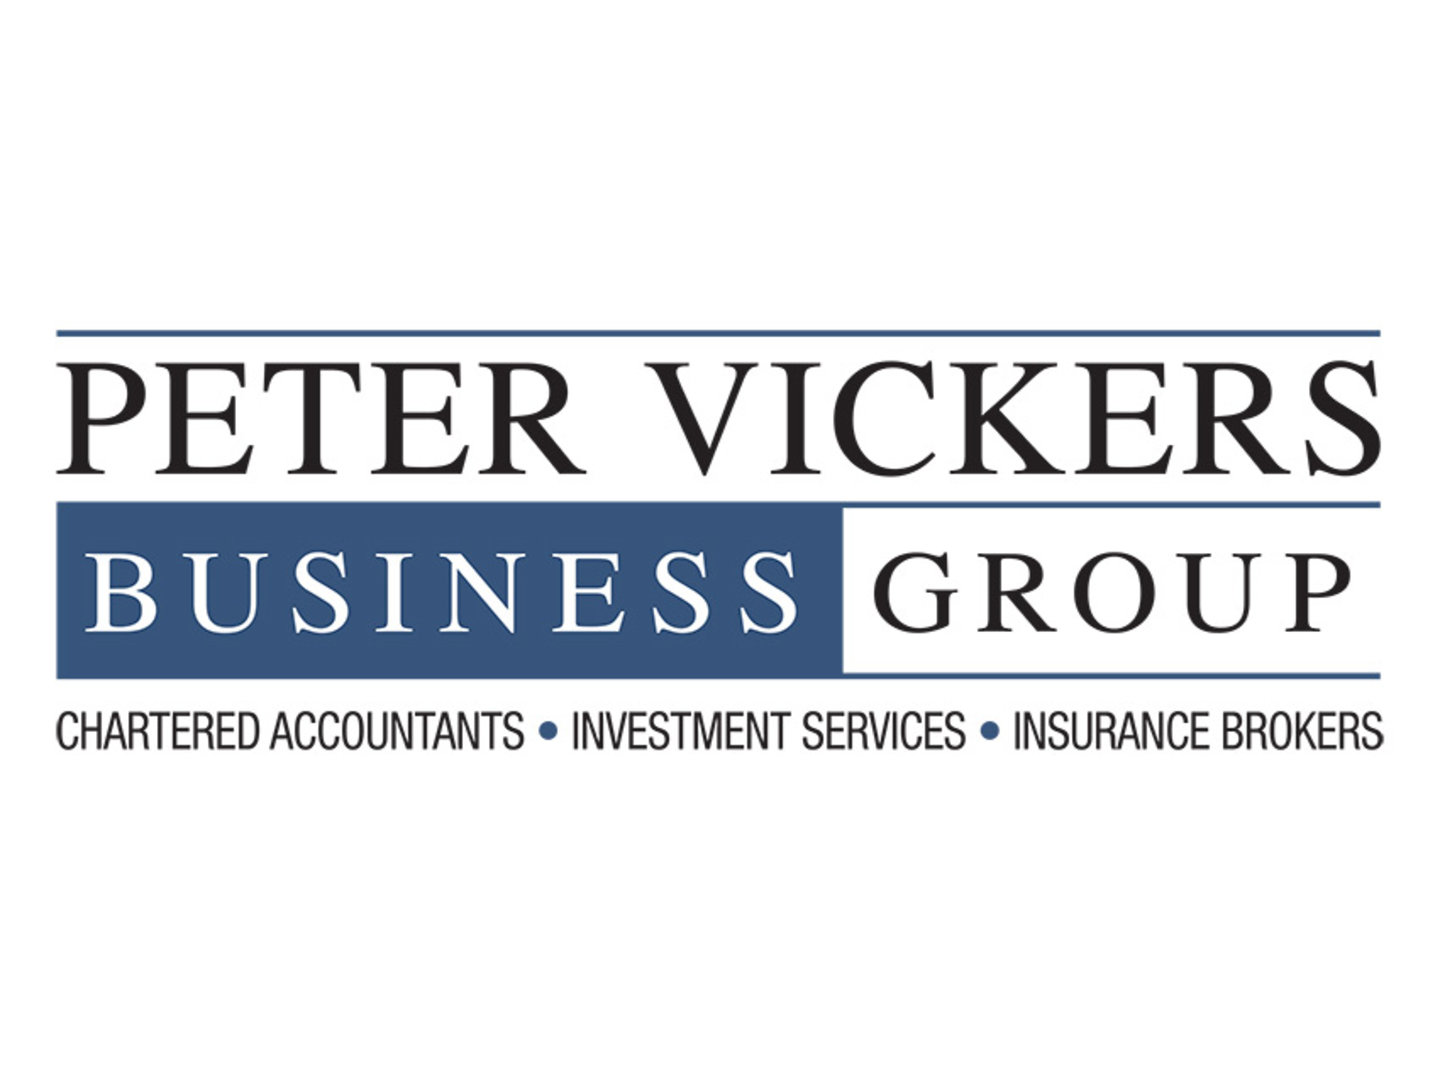 Peter Vickers Insurance Brokers is a leading insurance broking firm that can assist your business with all areas of individual and asset protection. Contact us today for a free quote!